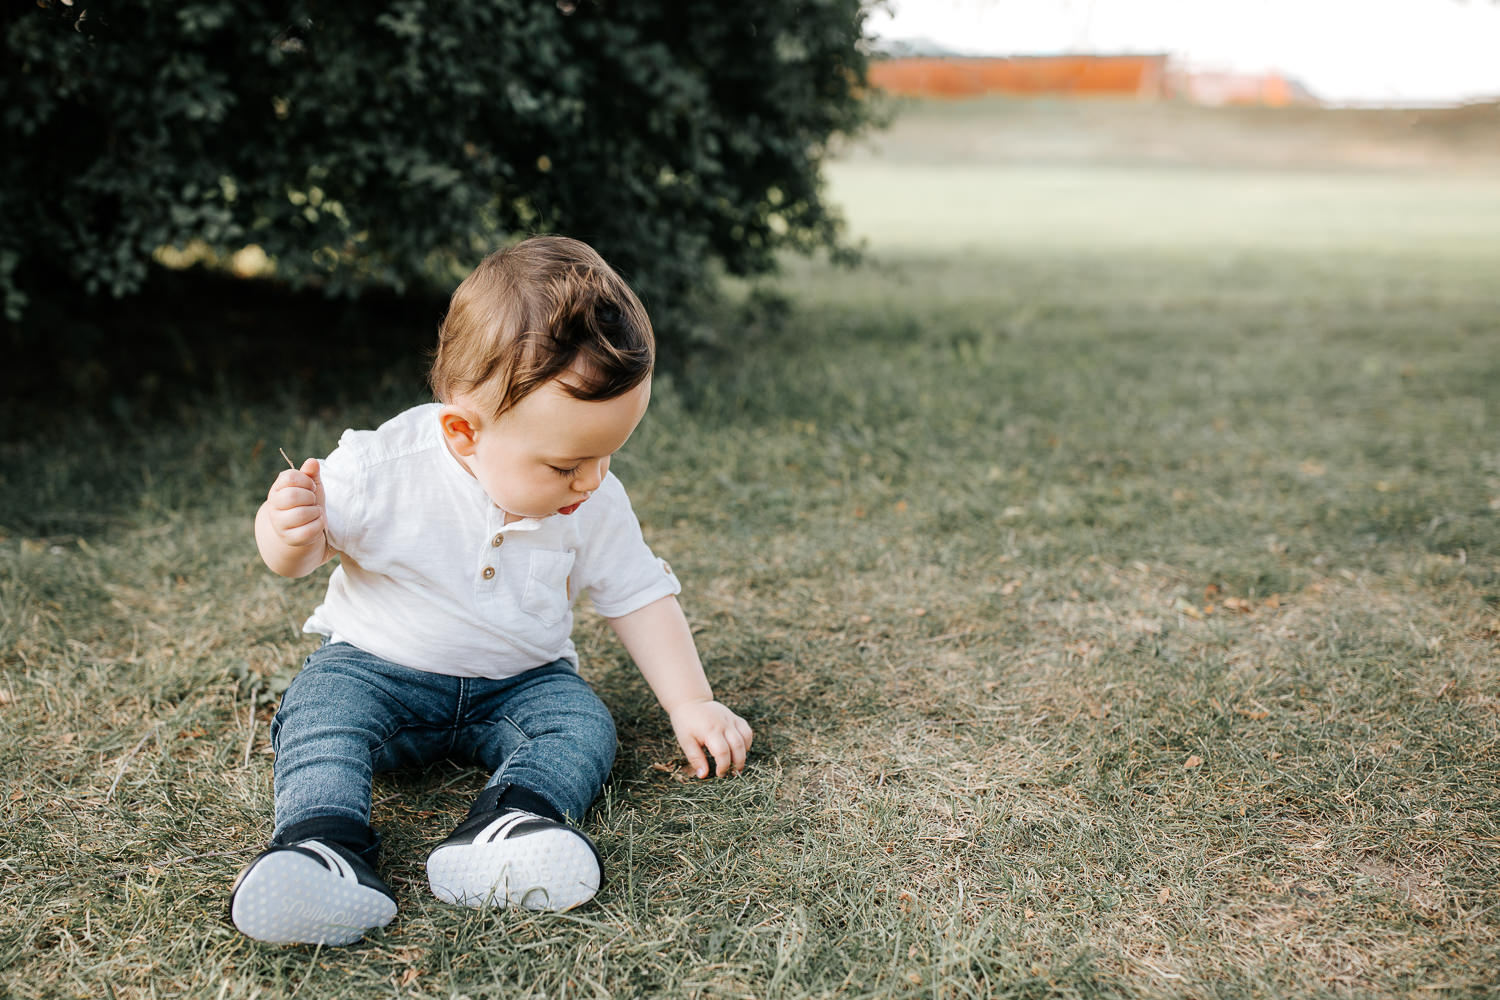 9 month old baby boy wearing white t-shirt, jeans and sneakers sitting on grass at park in front of greenery playing with leaves, looking down - Barrie Golden Hour Photos